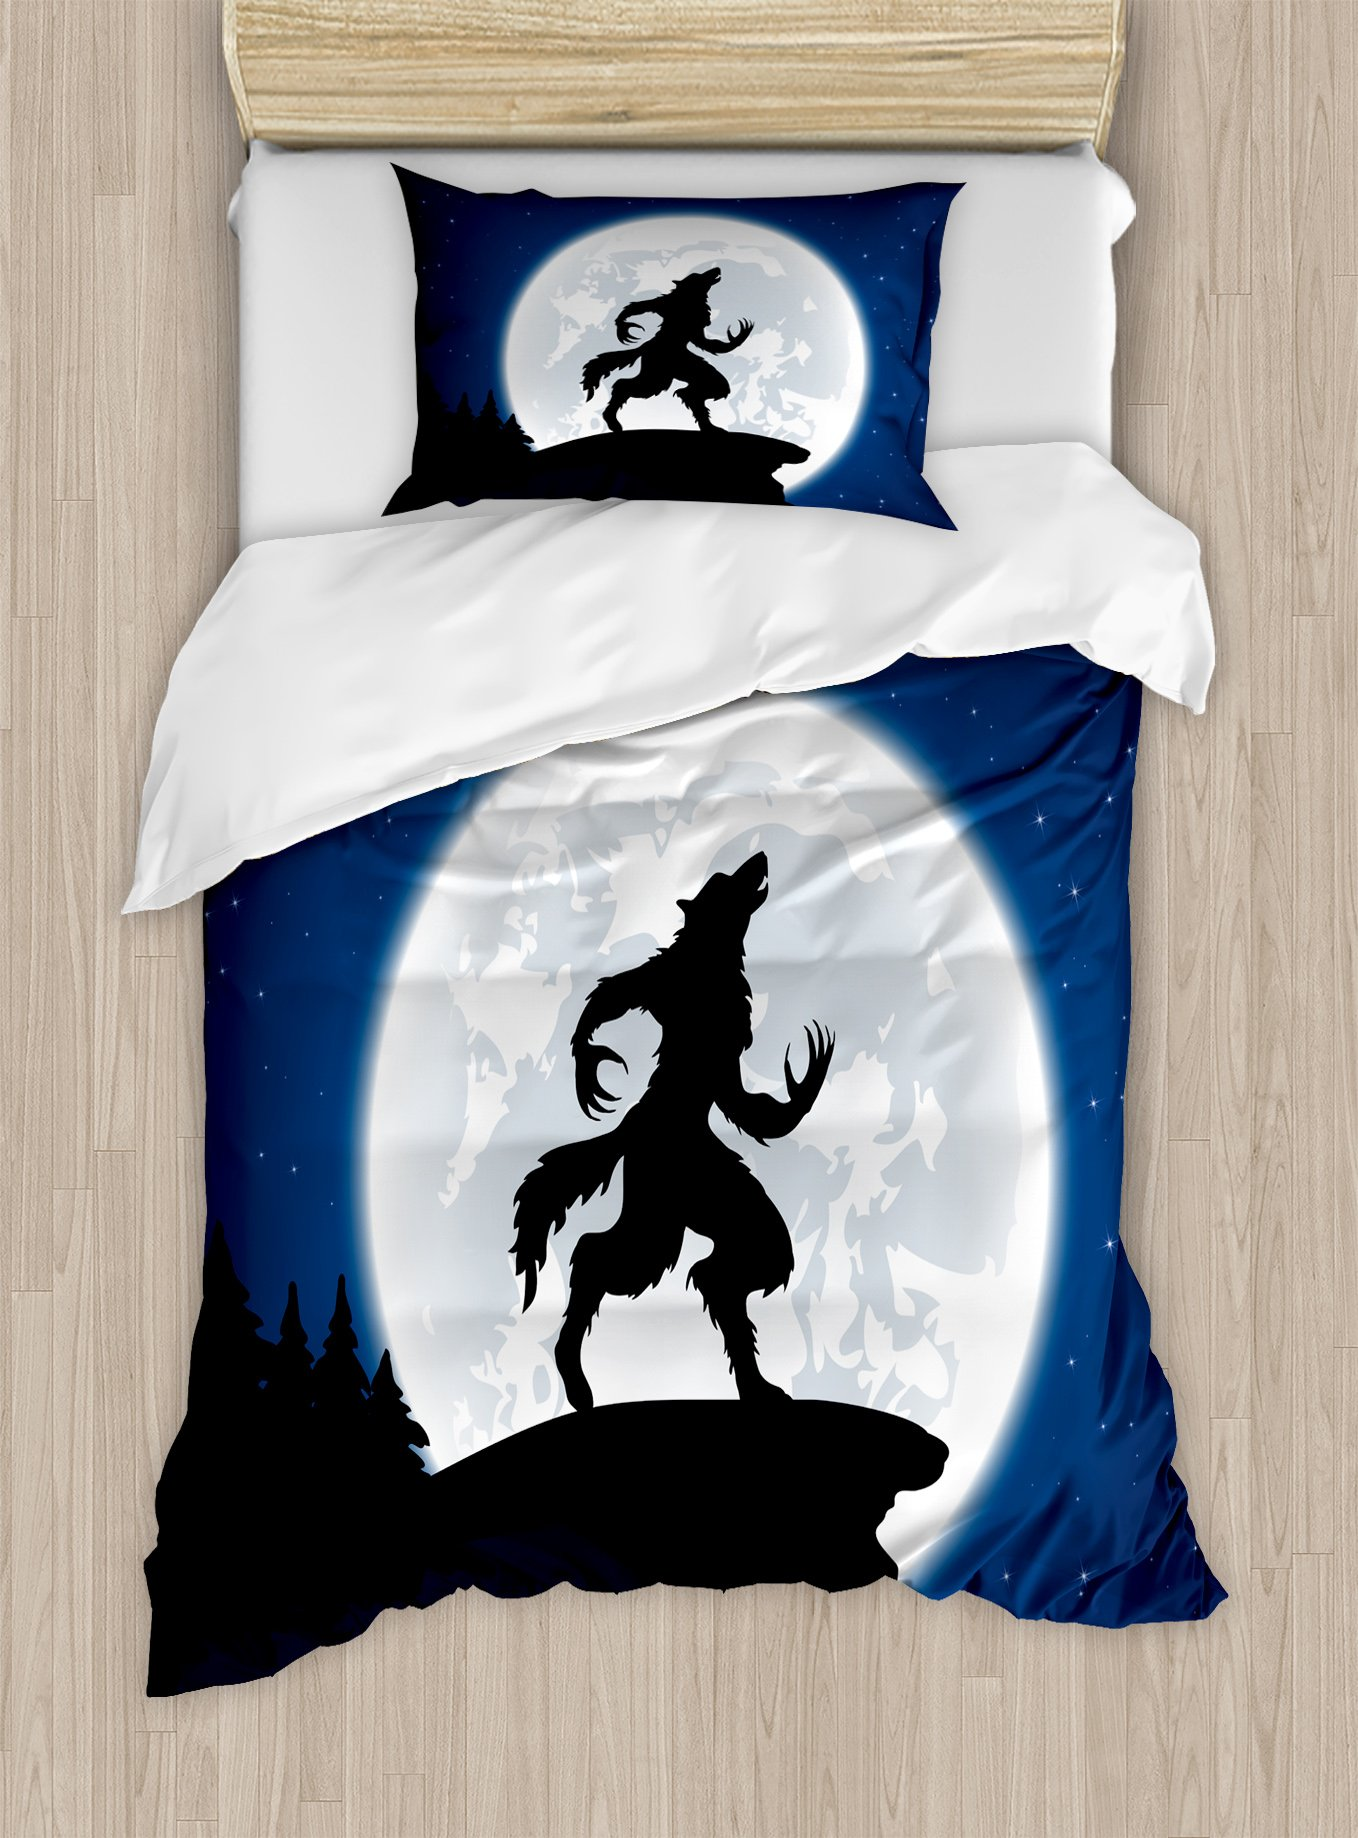 Ambesonne Wolf Duvet Cover Set Twin Size, Full Moon Night Sky Growling Werewolf Mythical Creature in Woods Halloween, Decorative 2 Piece Bedding Set with 1 Pillow Sham, Dark Blue Black White